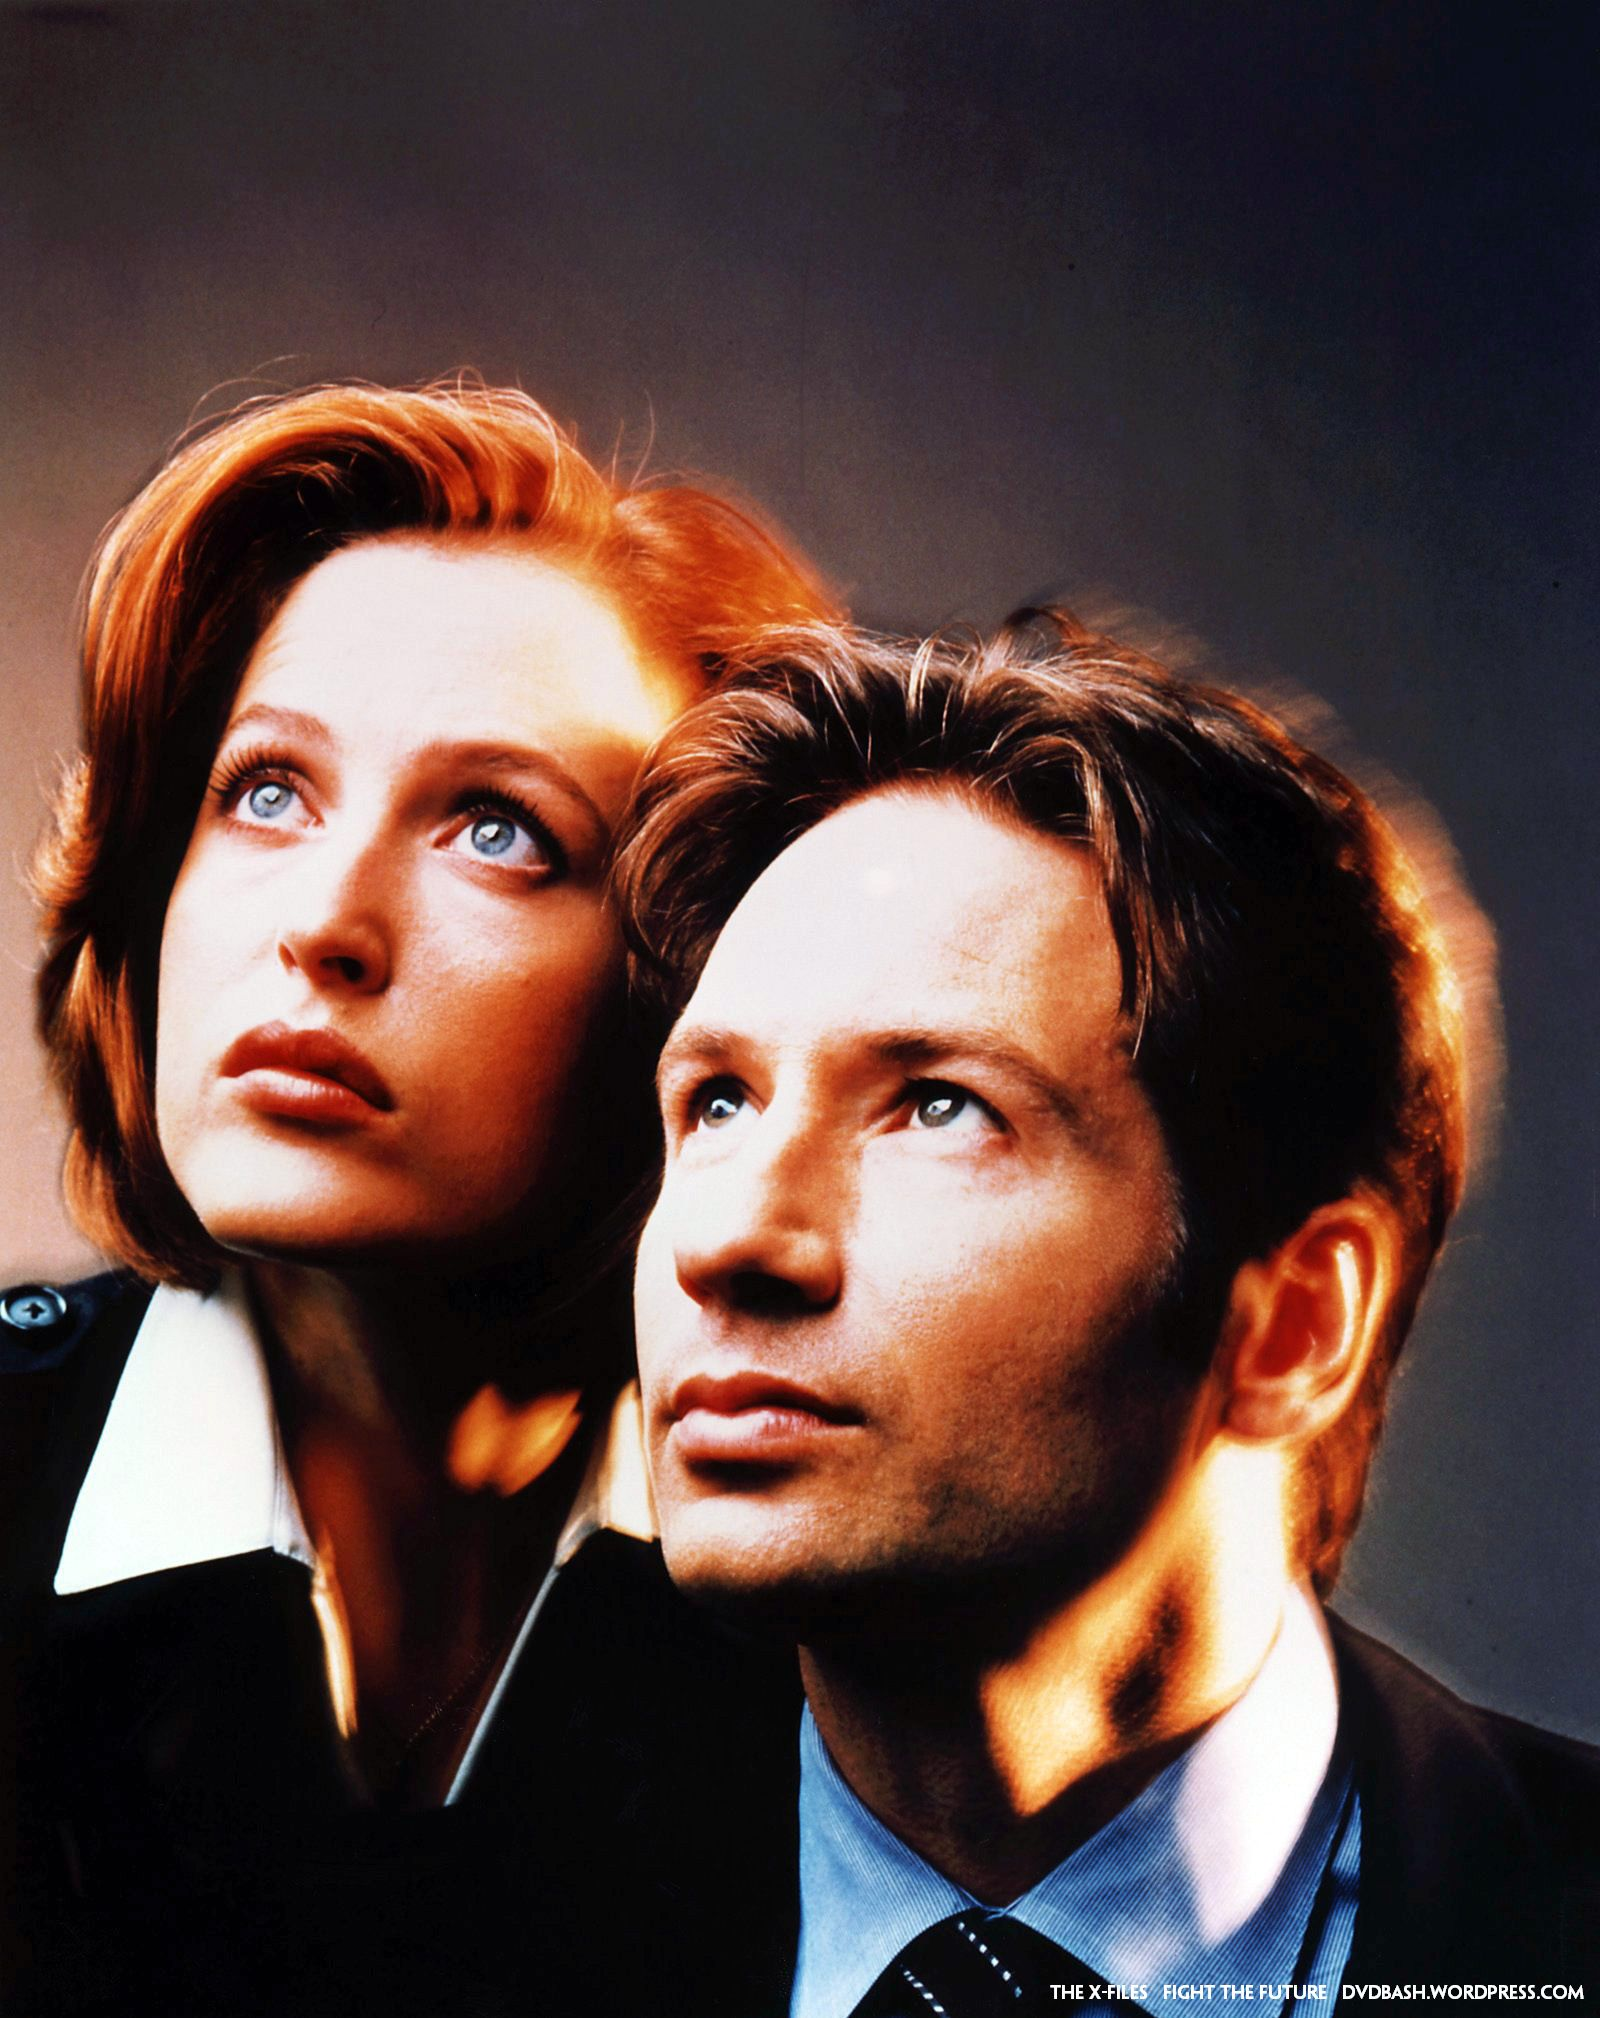 The X Files Movie Fight The Future 1998 Dvdbash